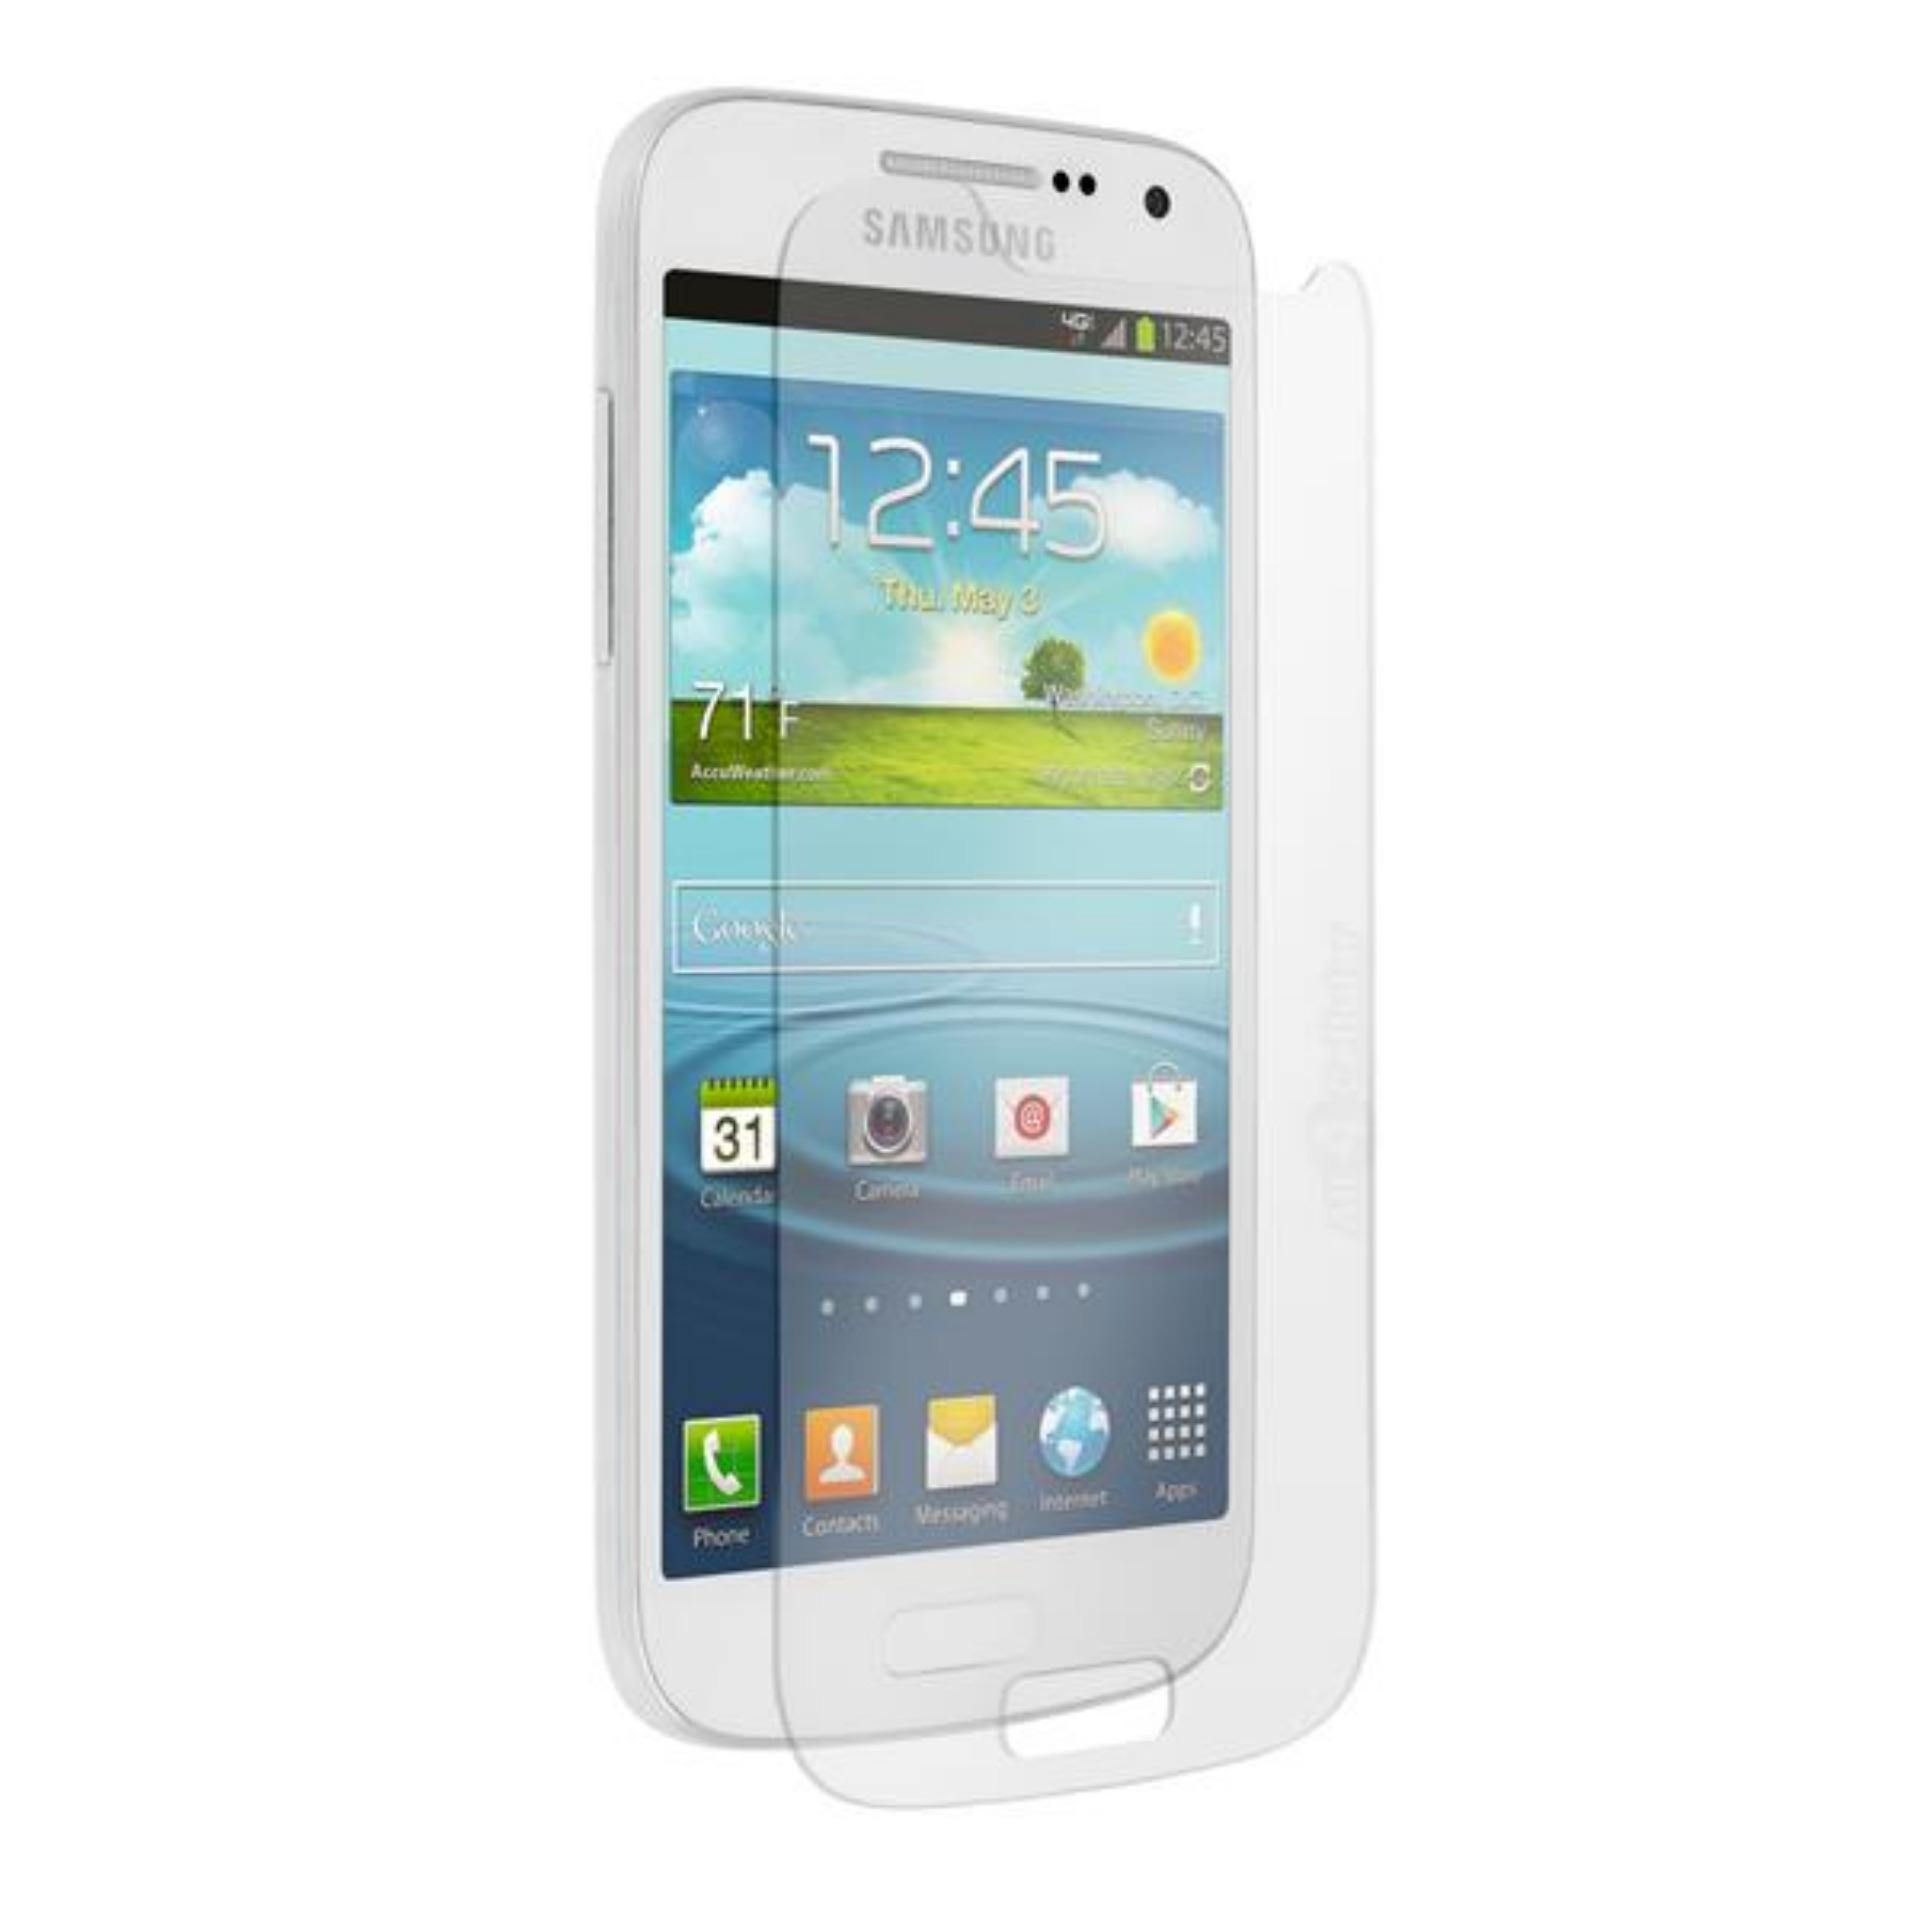 Vn Samsung Galaxy Note 1 / LTE / Duos / I9220 / N7000 Tempered Glass 9H Screen Protector 0.32mm - Transparan